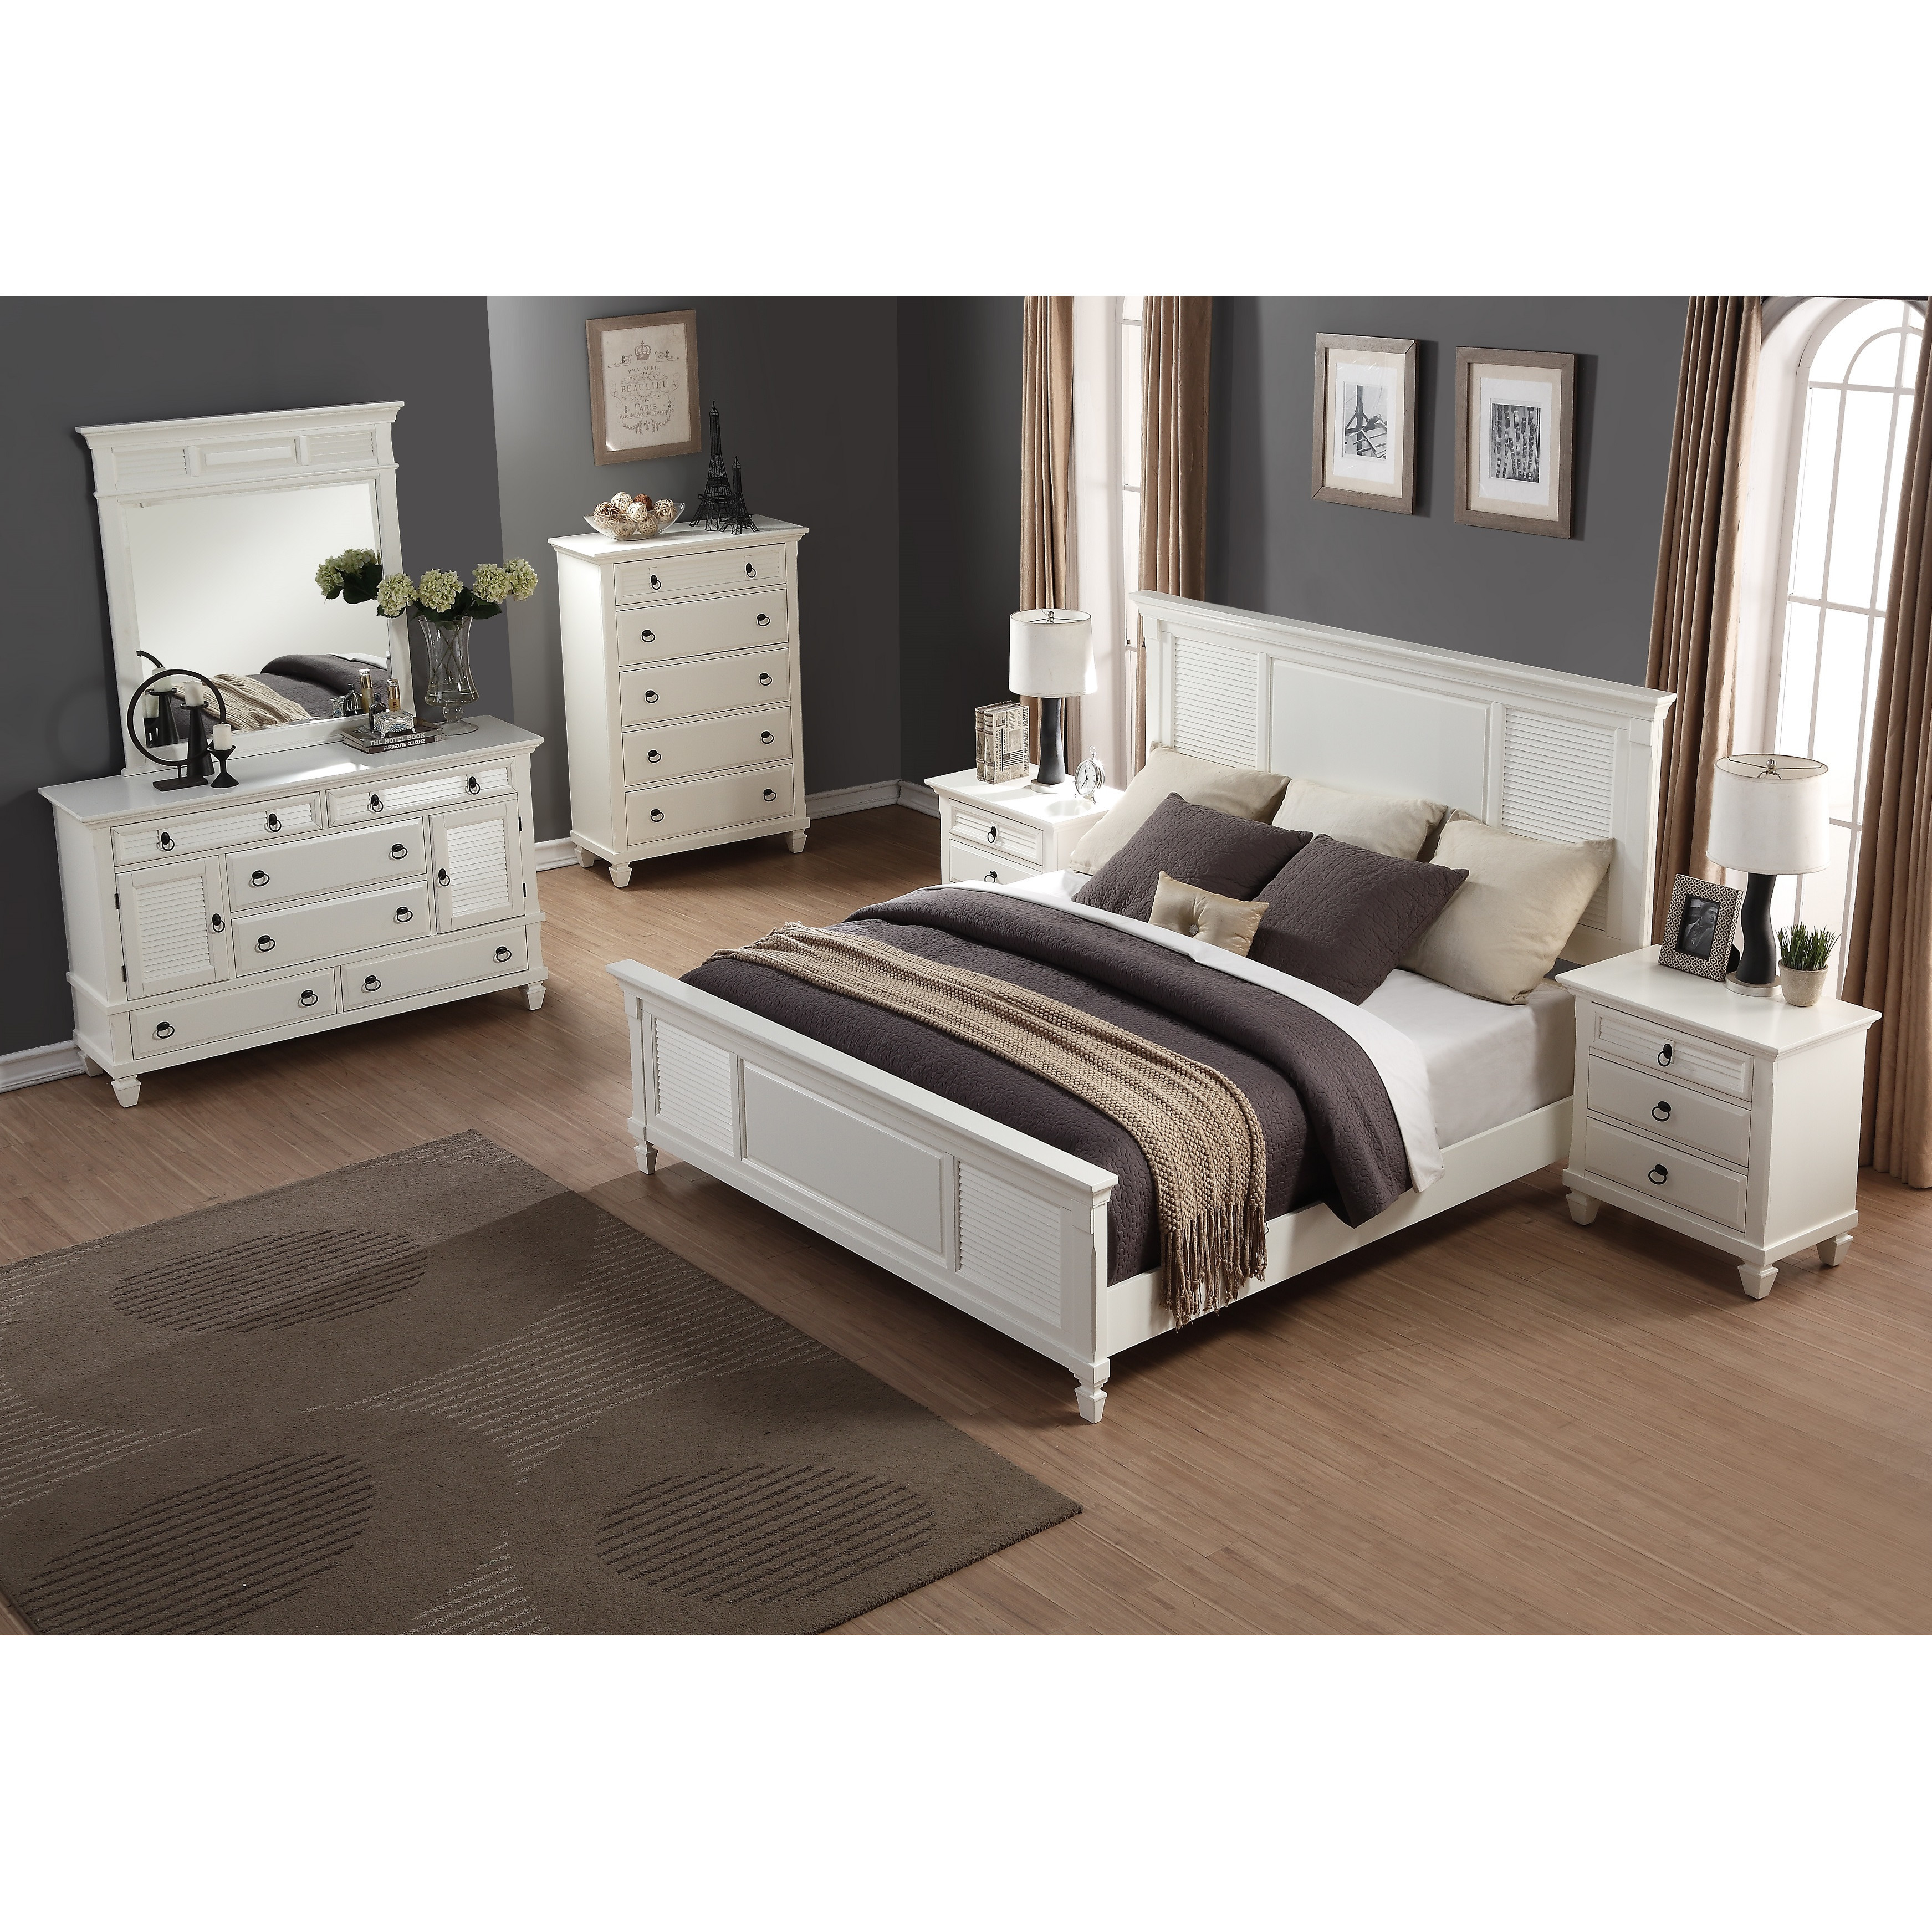 Best ideas about Wayfair Bedroom Sets . Save or Pin Roundhill Furniture Regitina Panel 6 Piece Bedroom Set Now.